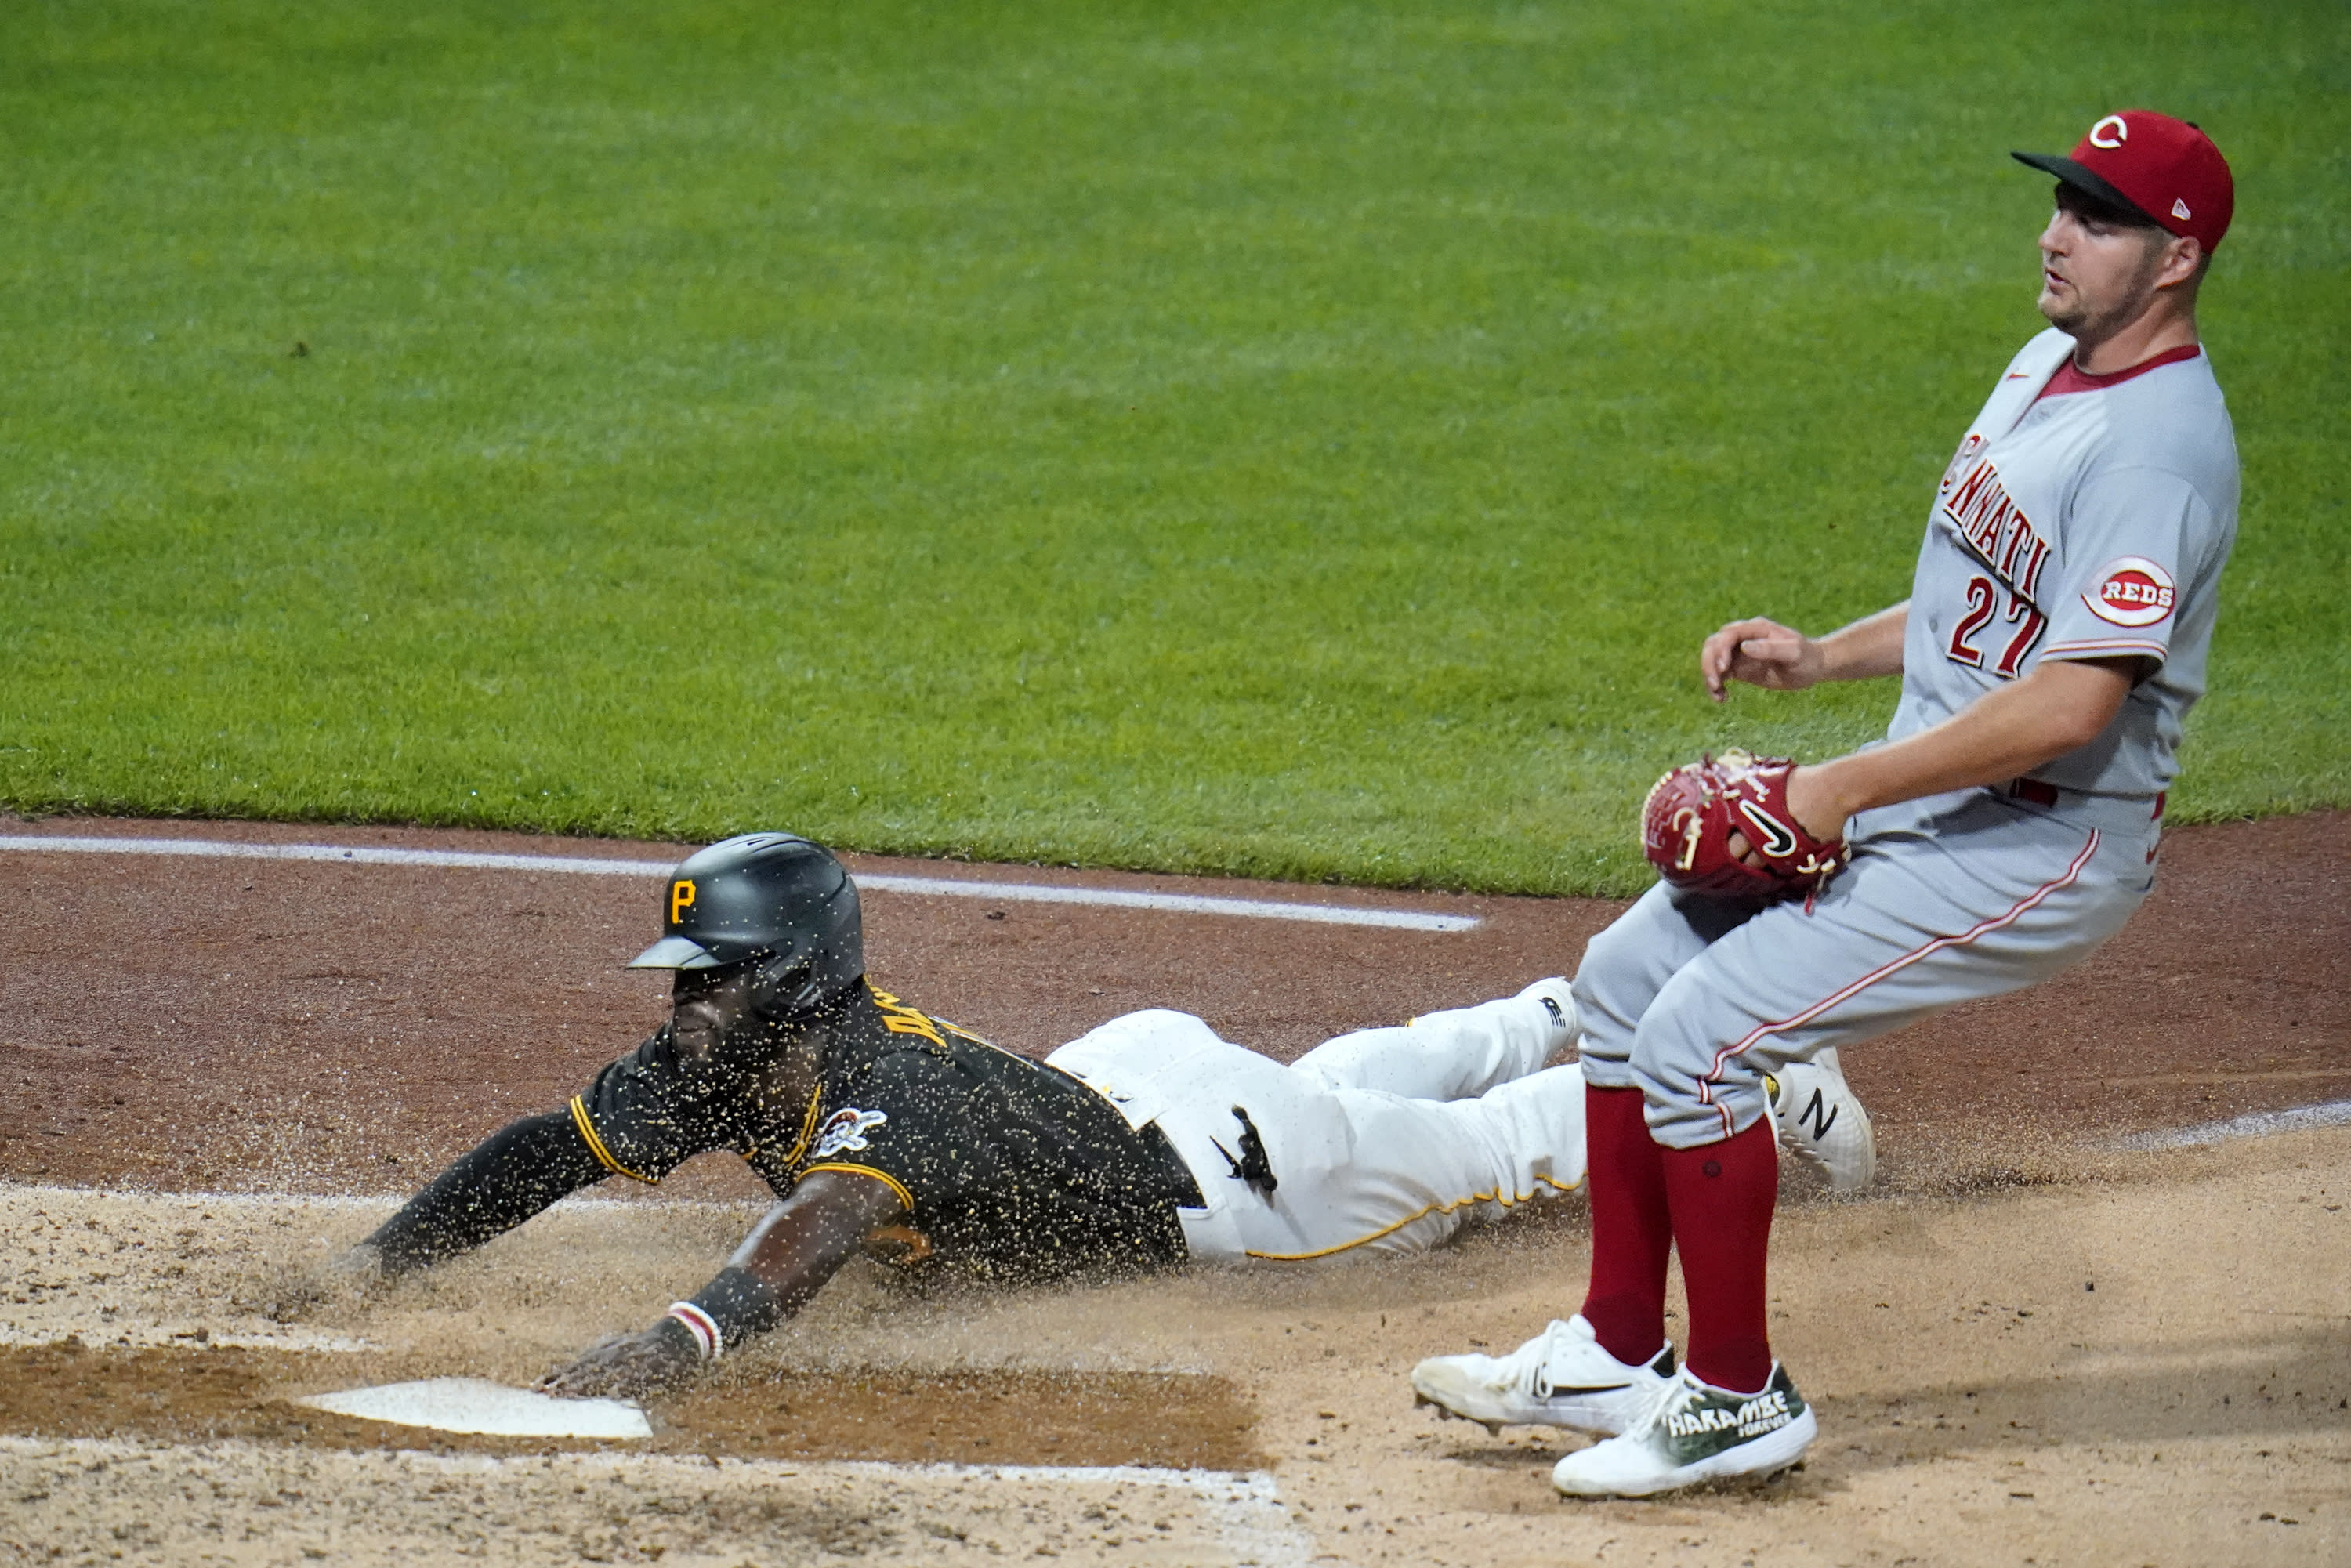 Pittsburgh Pirates' Anthony Alford, left, scores on a wild pitch as Cincinnati Reds starting pitcher Trevor Bauer covers home on the play during the fourth inning of the second baseball game of a doubleheader in Pittsburgh, Friday, Sept. 4, 2020. (AP Photo/Gene J. Puskar)